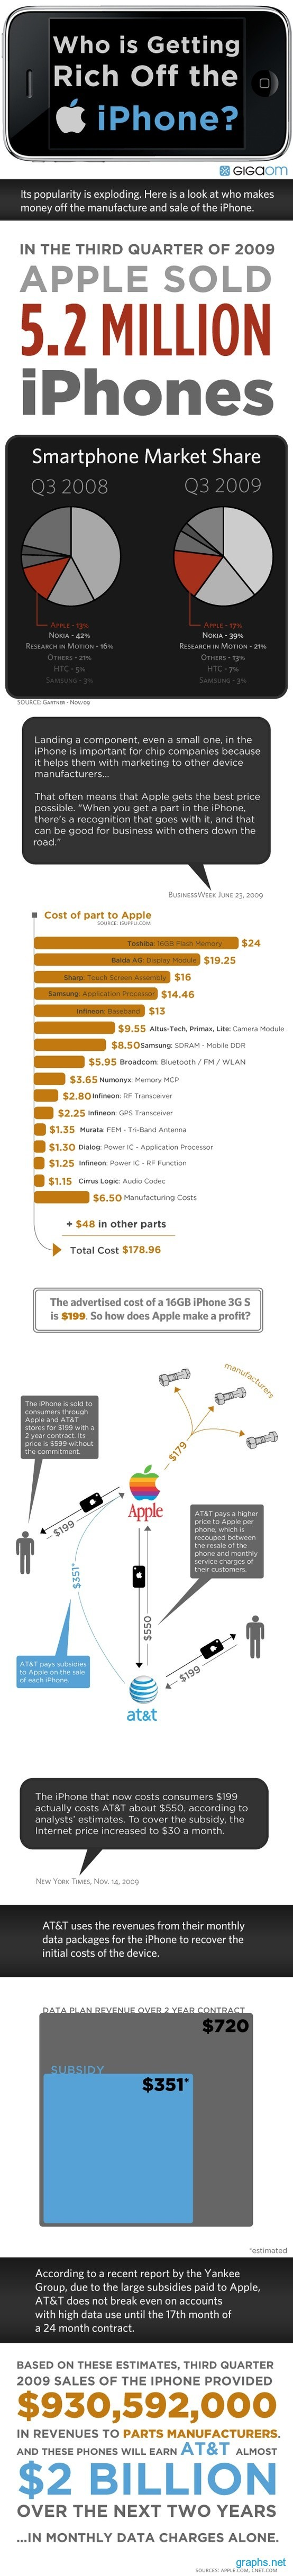 How Much Profit Does Apple Make on iPhone?